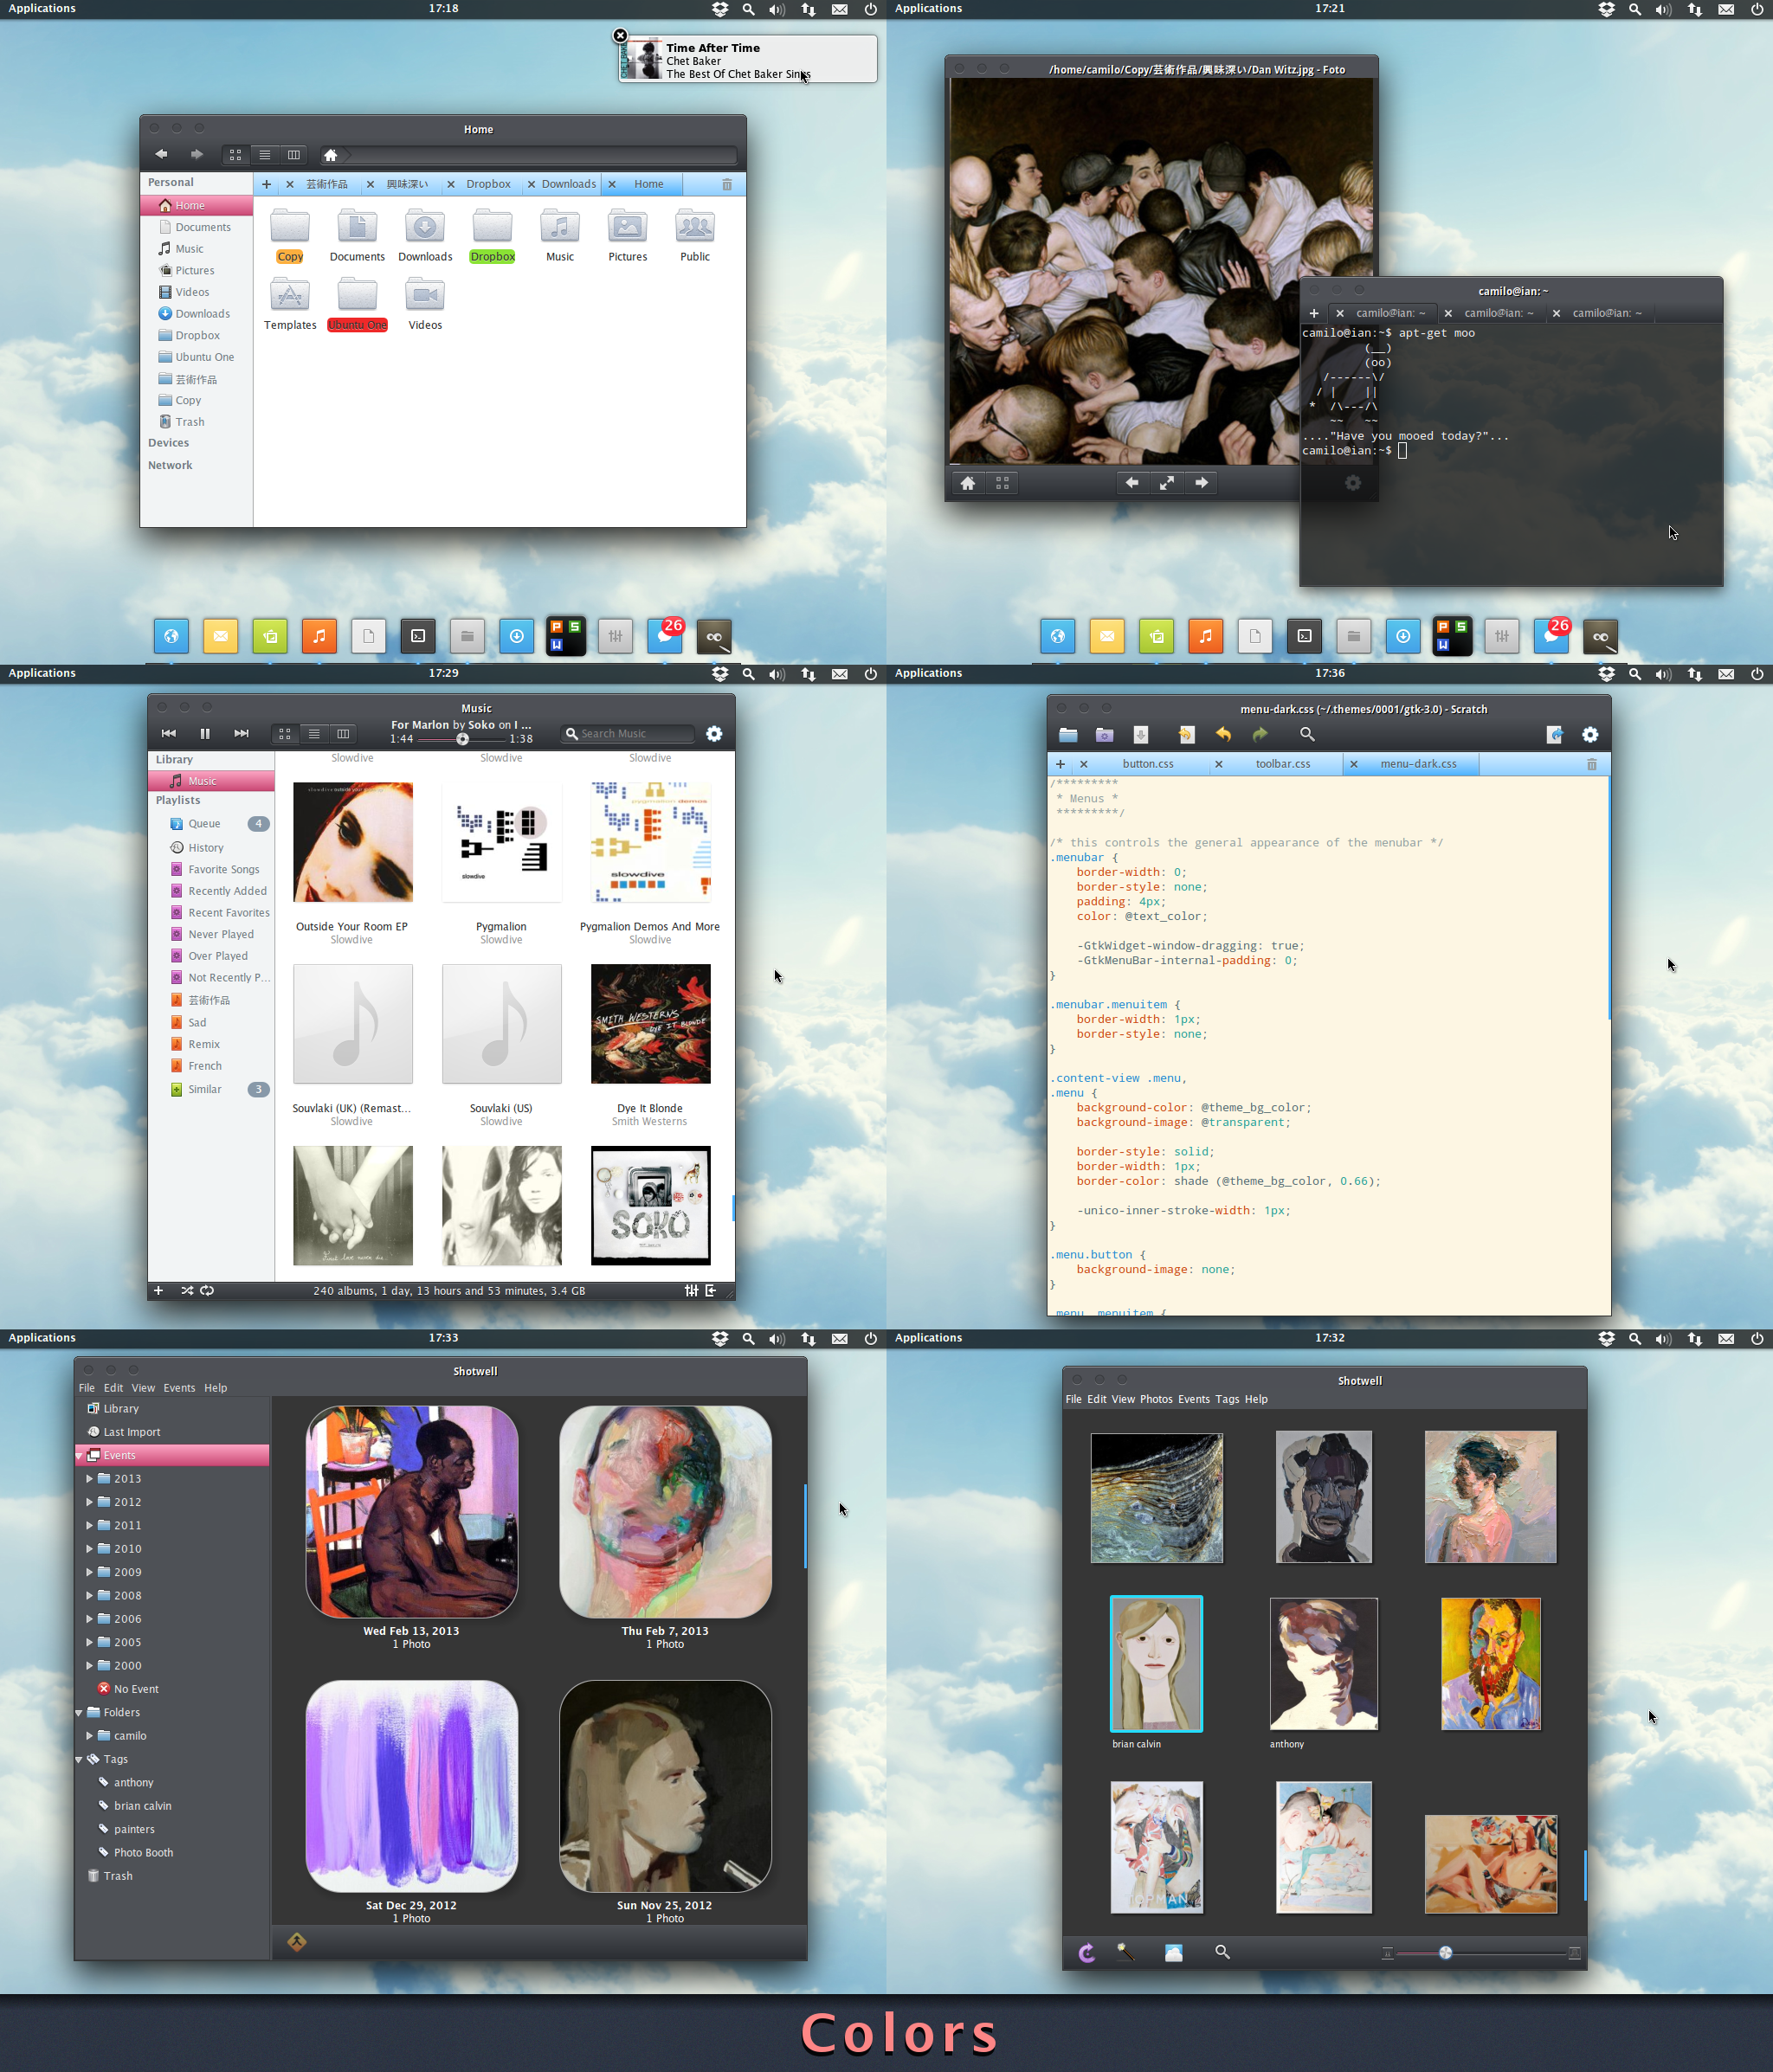 Colors - an elementary OS theme